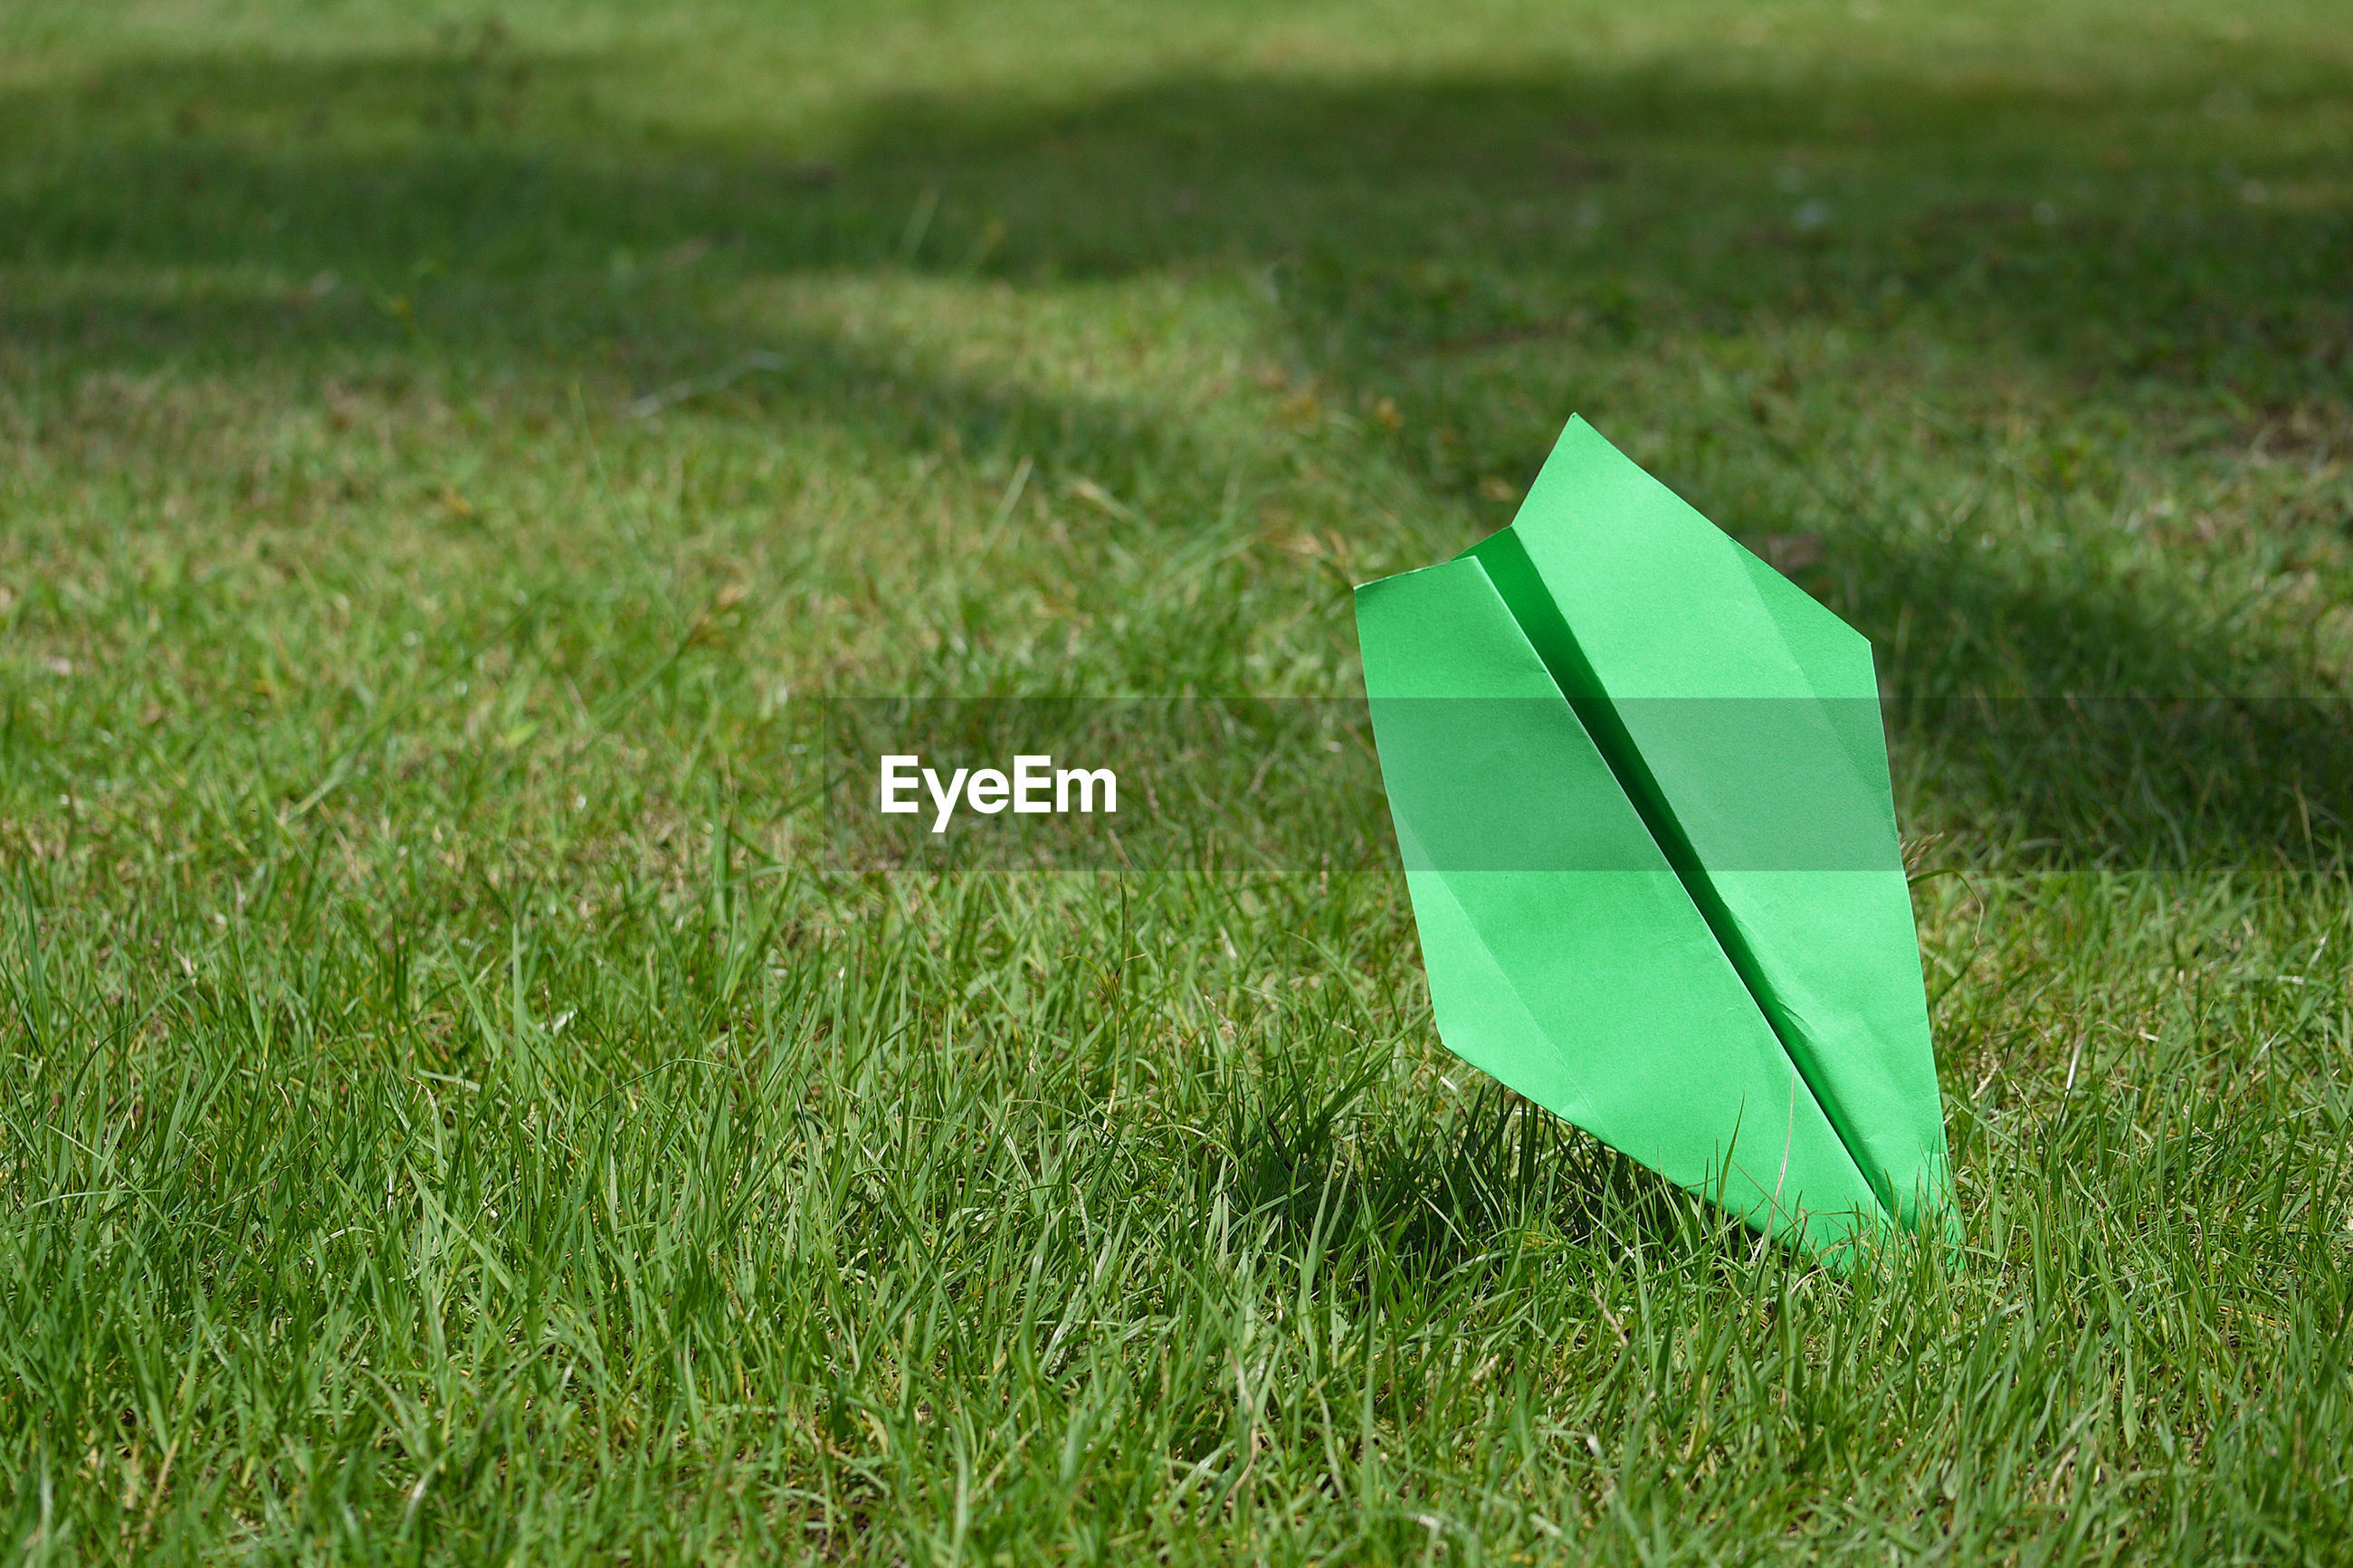 Green paper airplane on grassy field